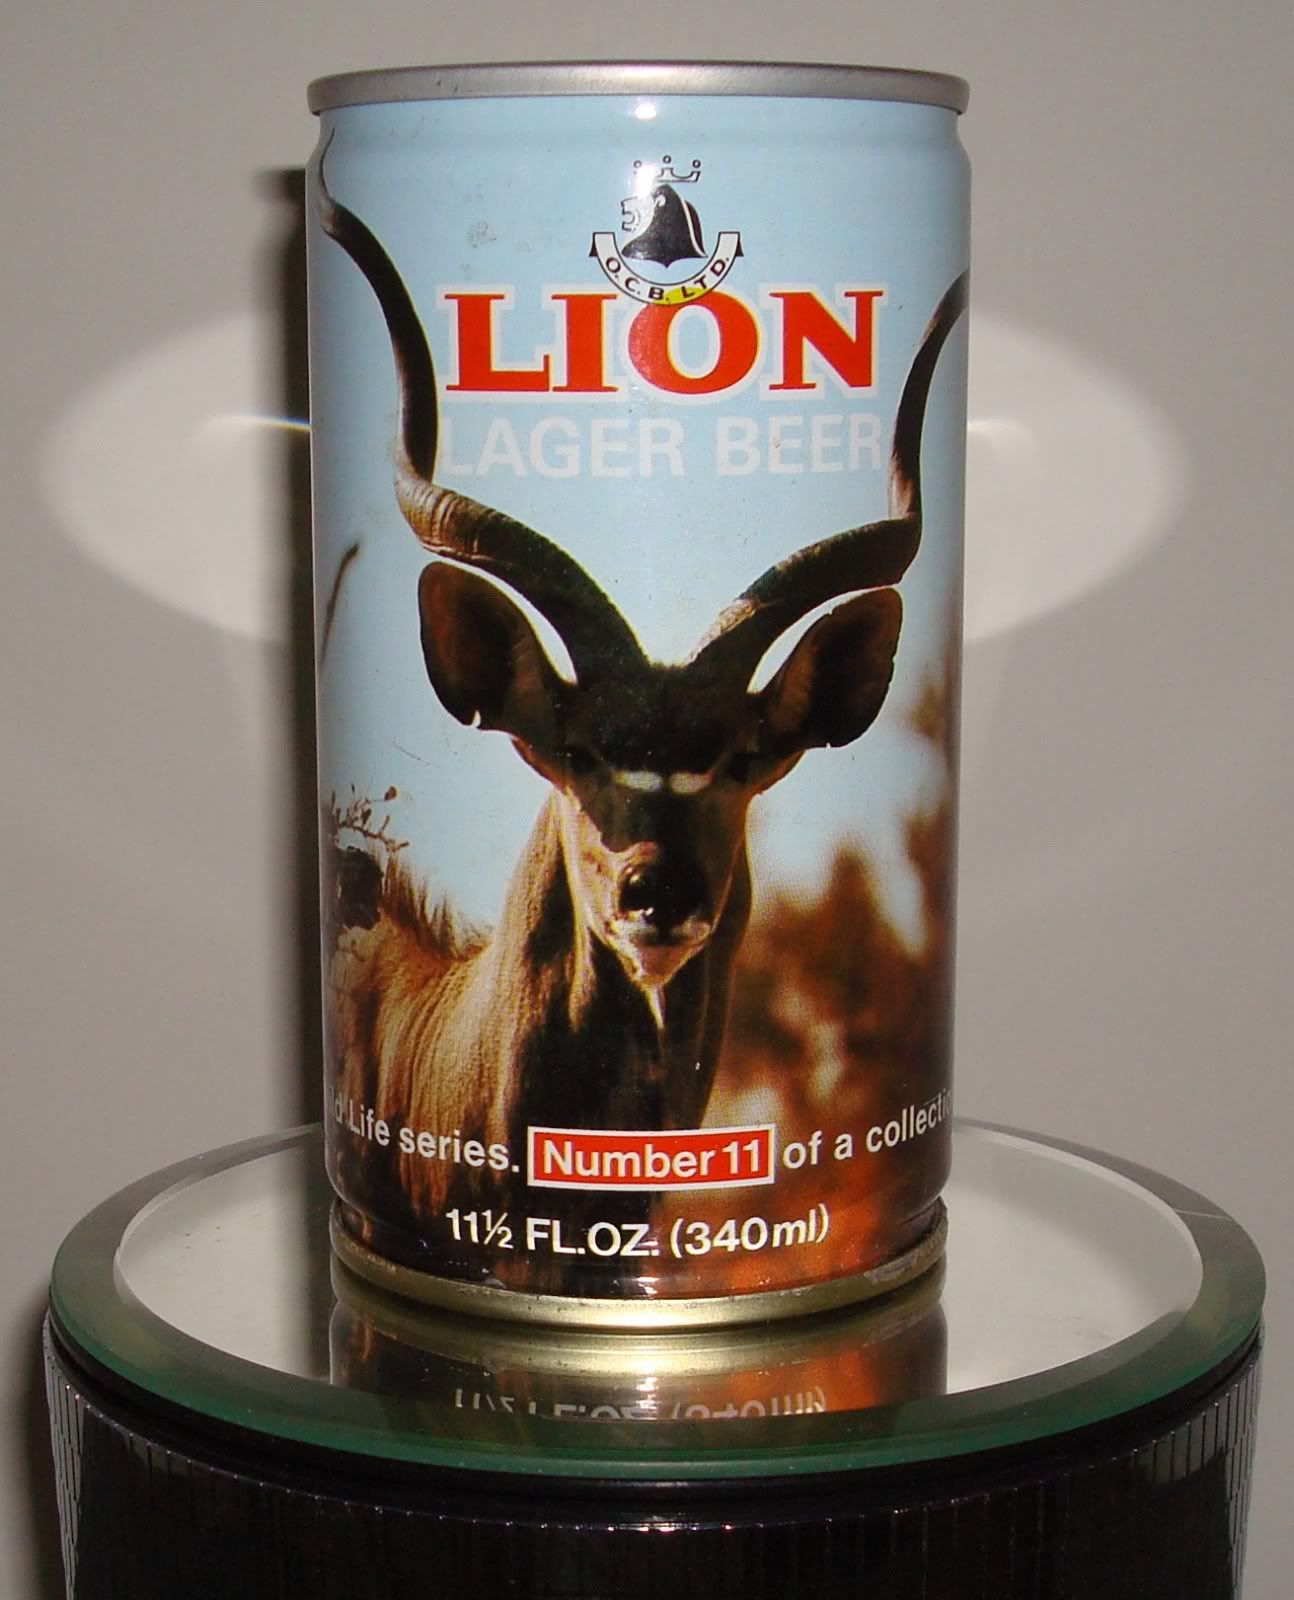 Lion Lager Beer from South Africa